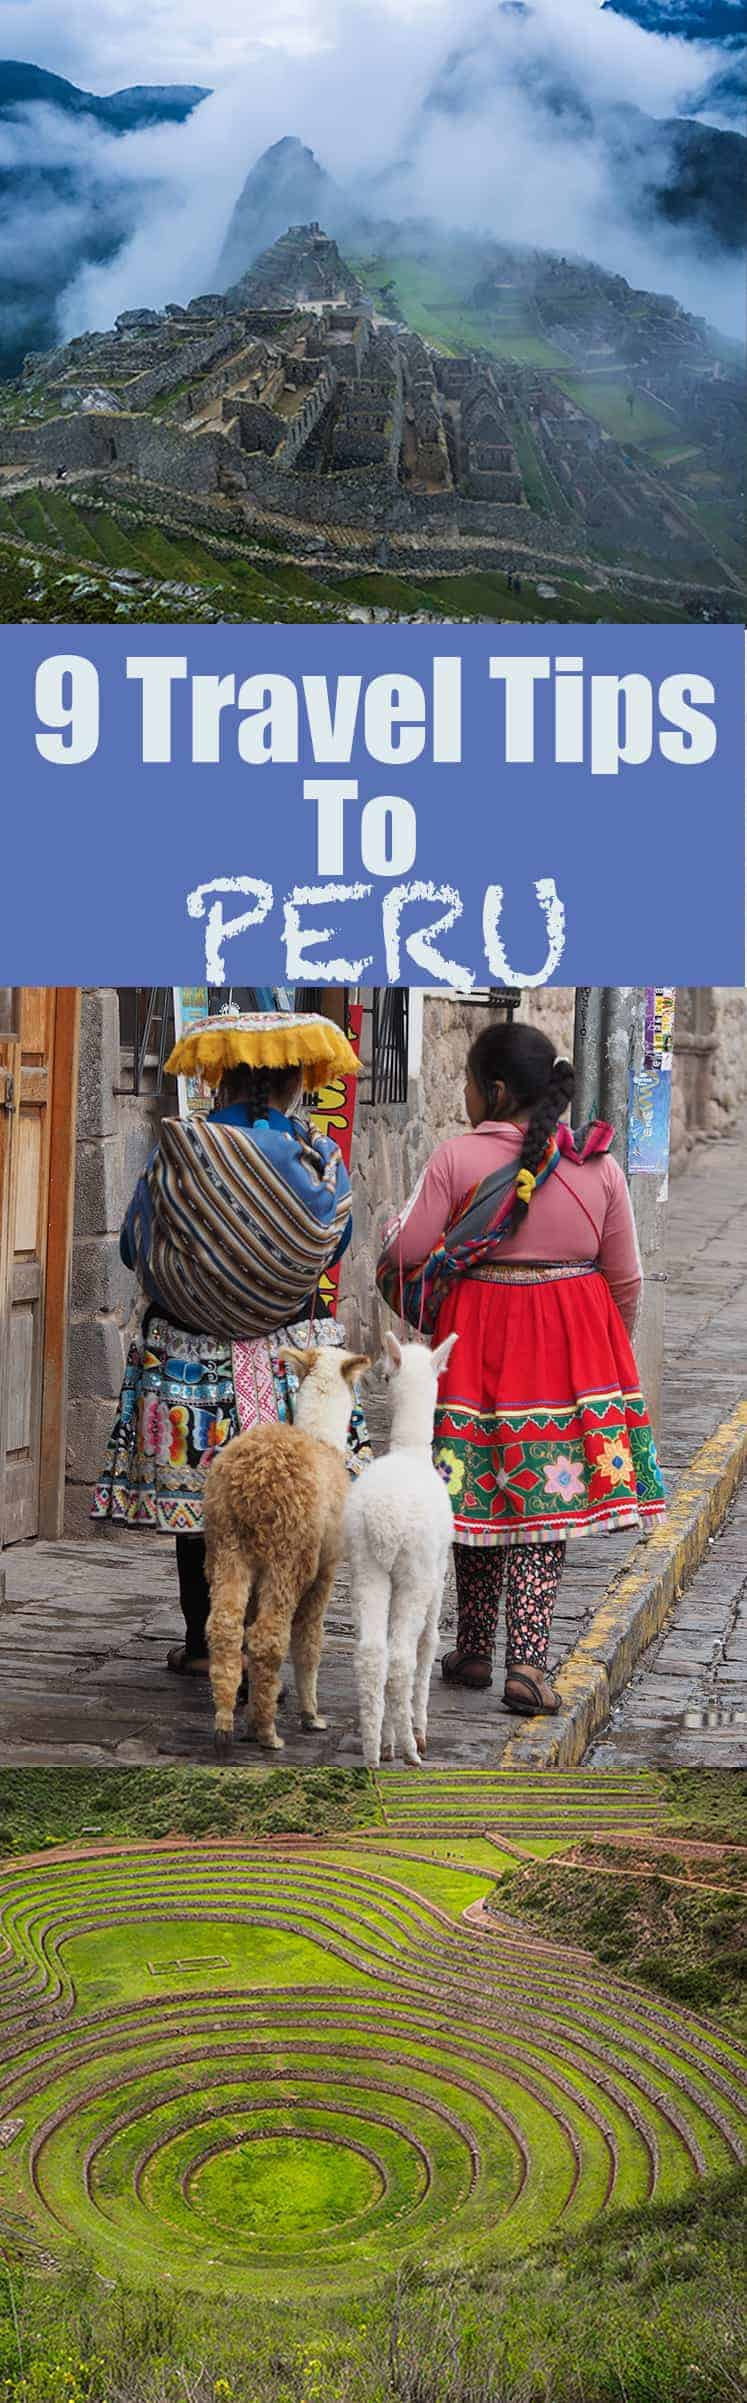 Things you should now before going to peru, how to get into Lima after arrival? What sim card should you get